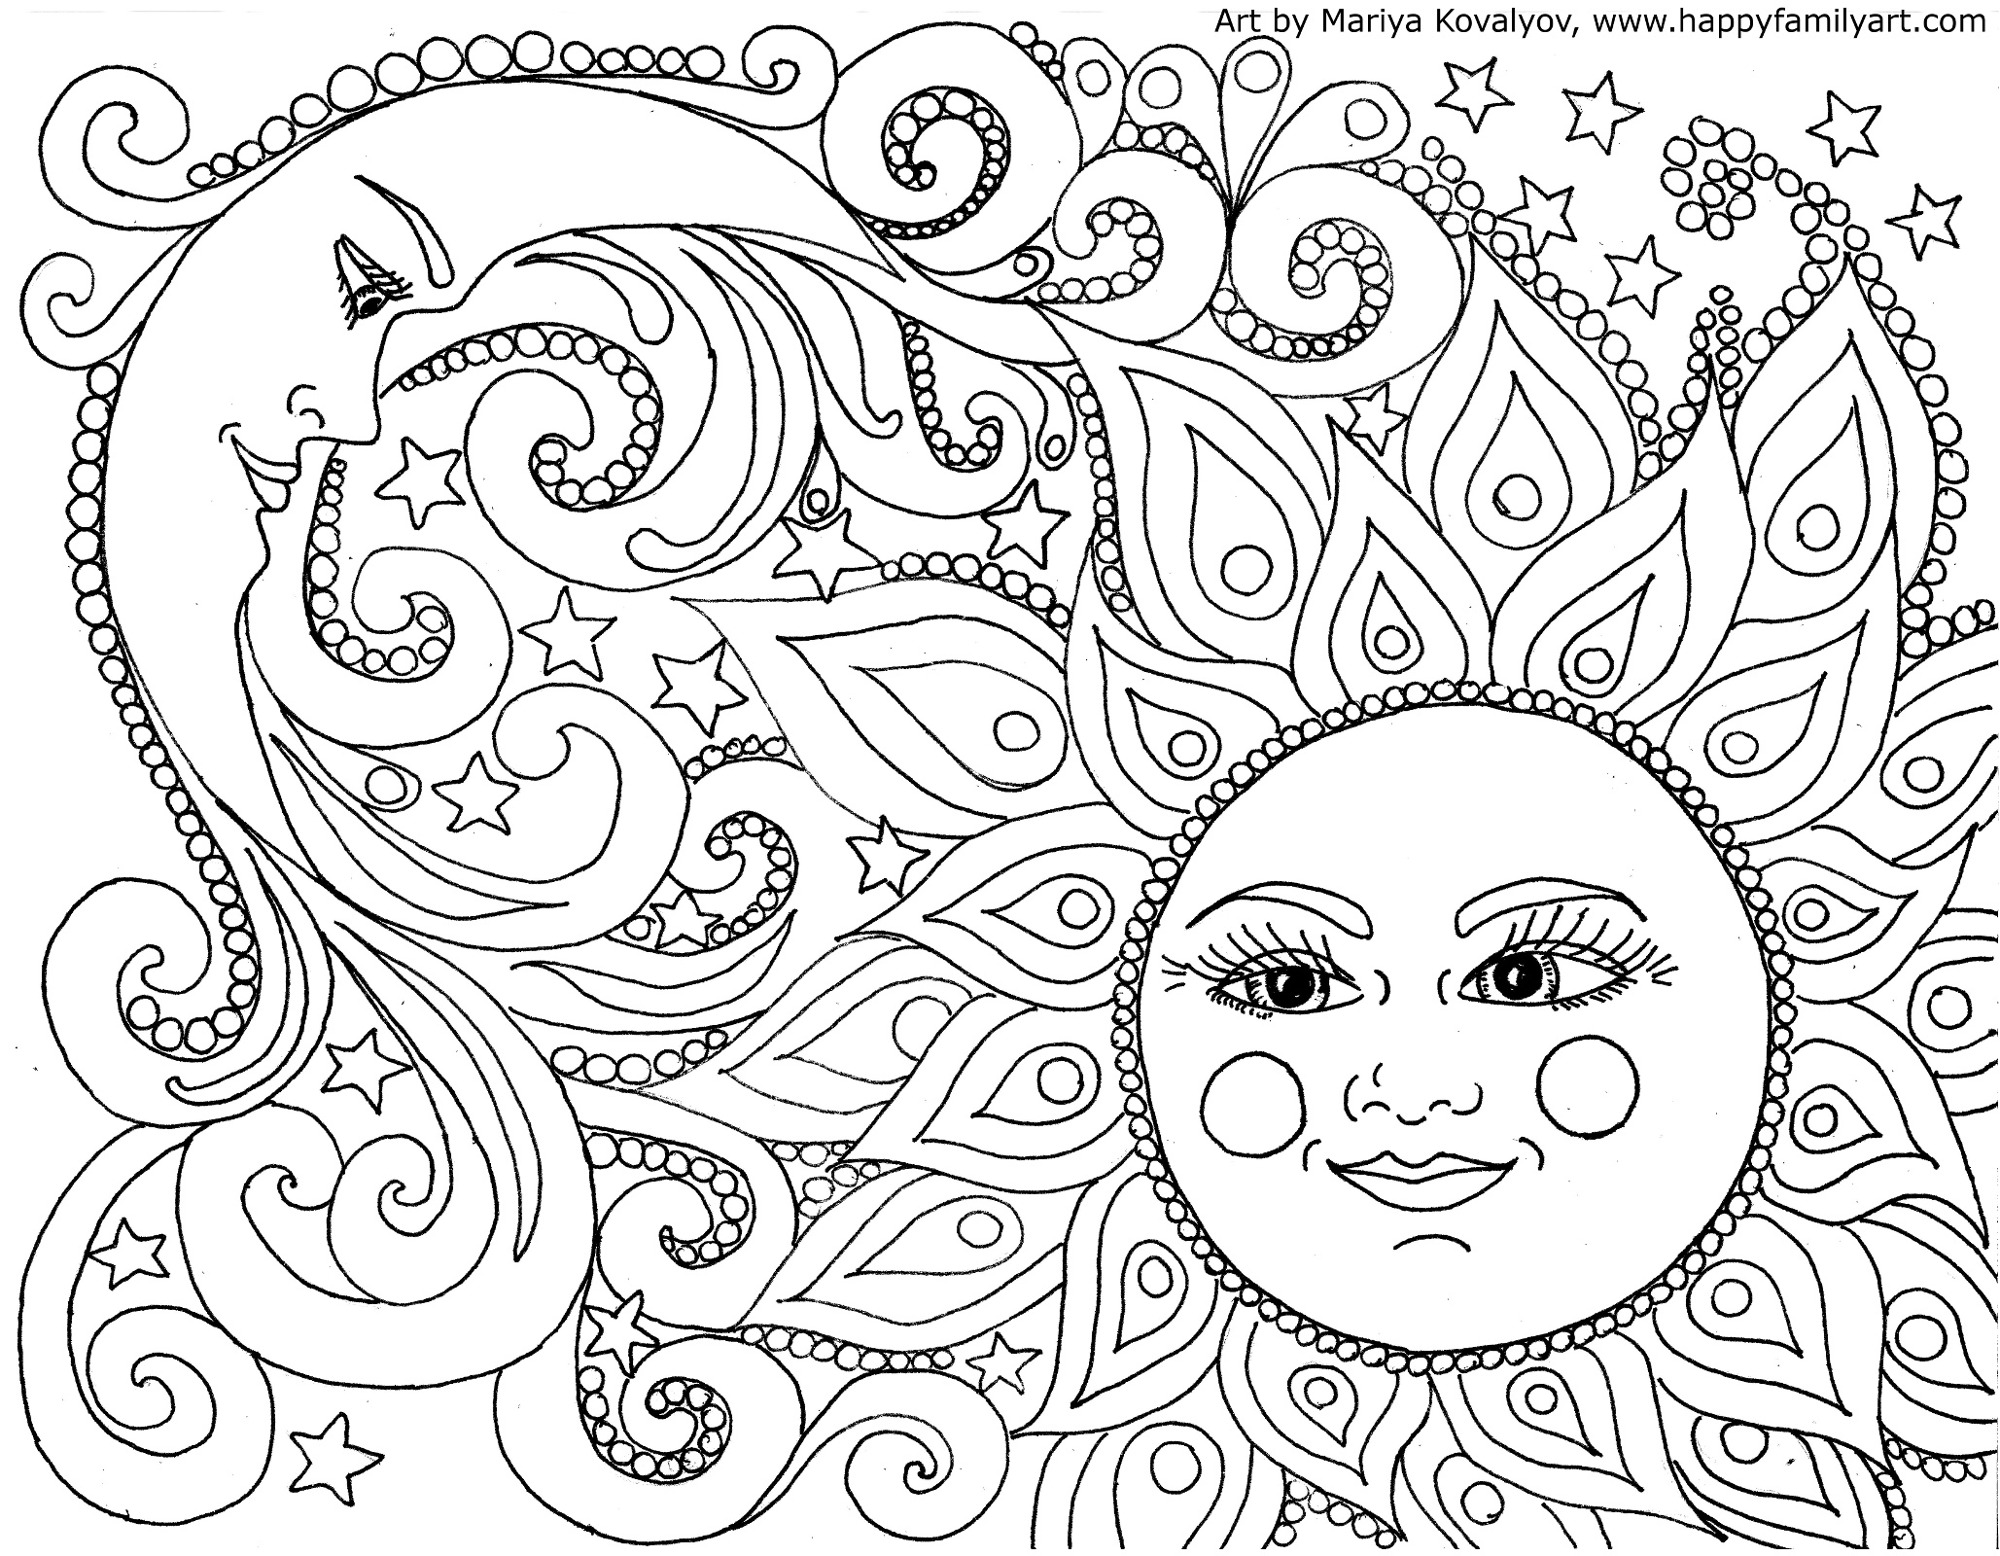 happy family art original and fun coloring pages - Fun Coloring Pages